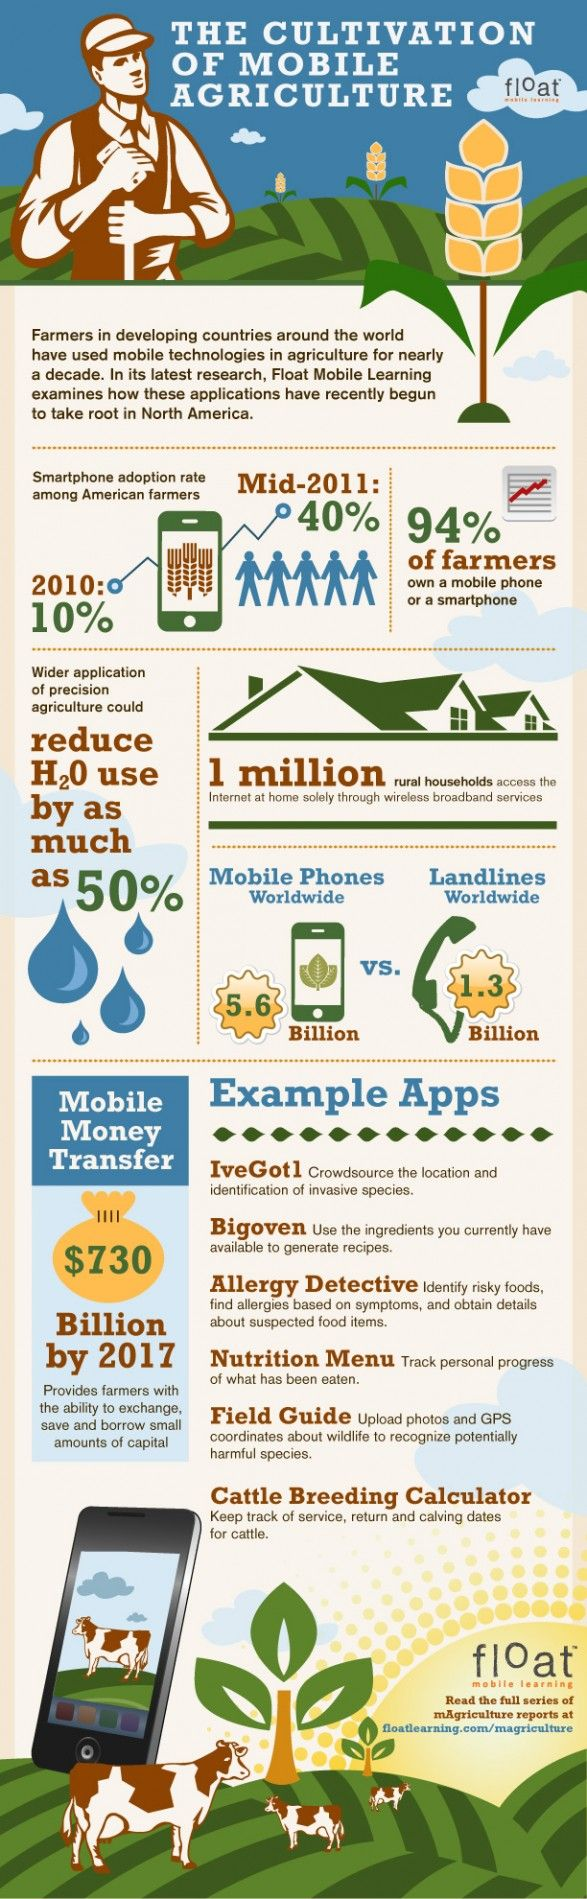 The Cultivation of Mobile Agriculture